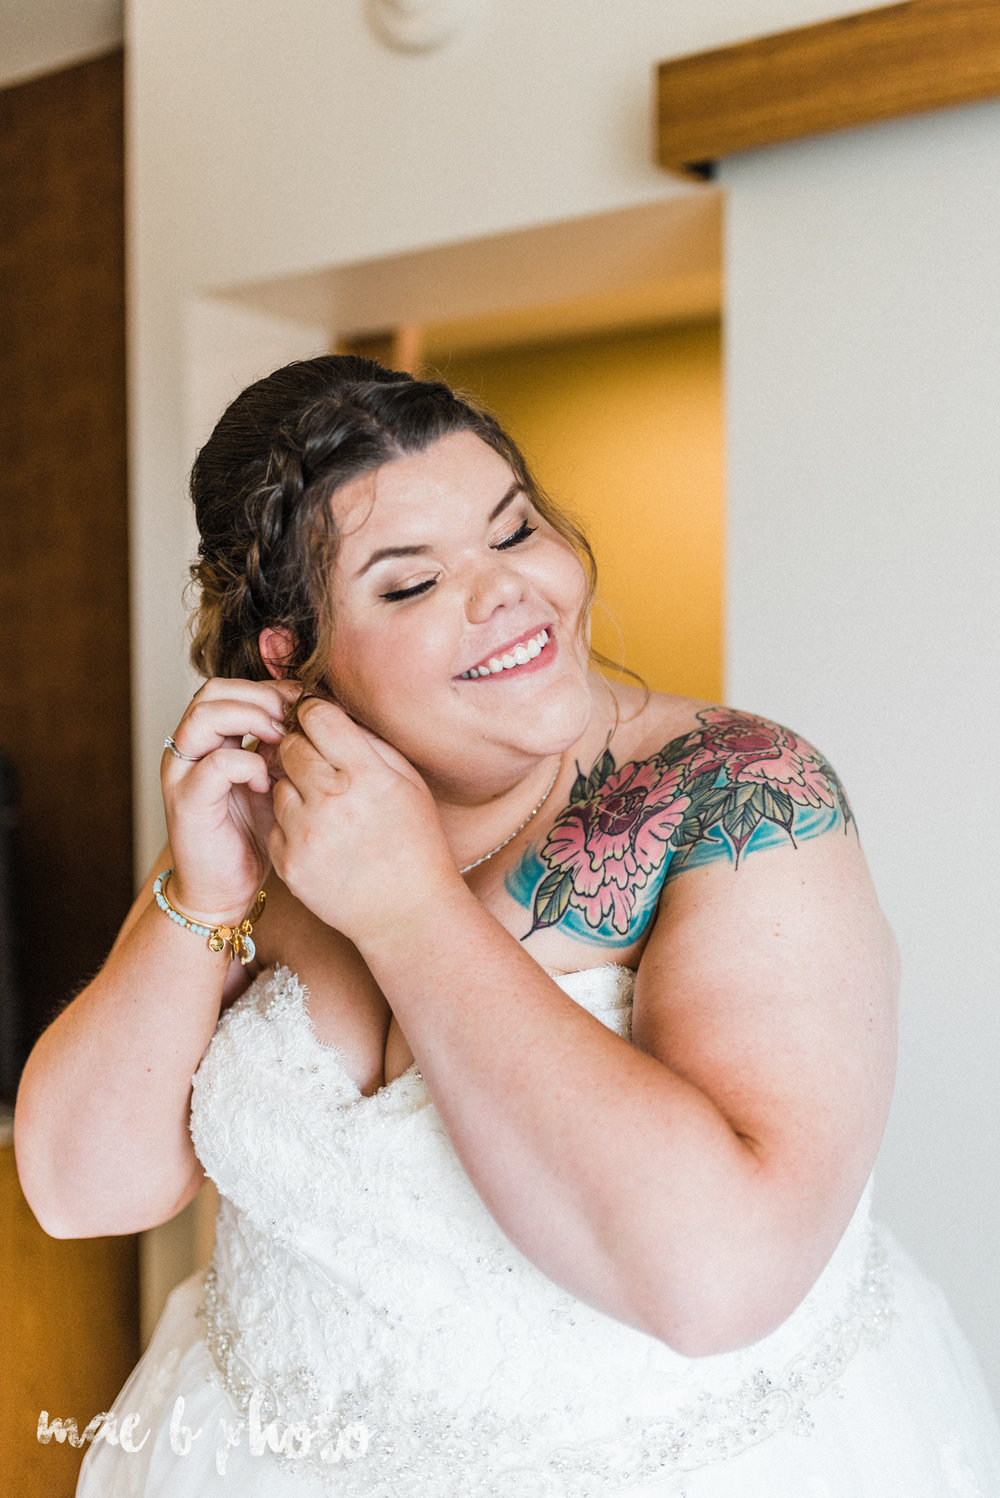 newly engaged and wedding planning in cleveland ohio youngstown ohio pittsburgh pennsylvania warren ohio becoming a mae b photo bride by youngstown wedding photographer mae b photo-14.jpg